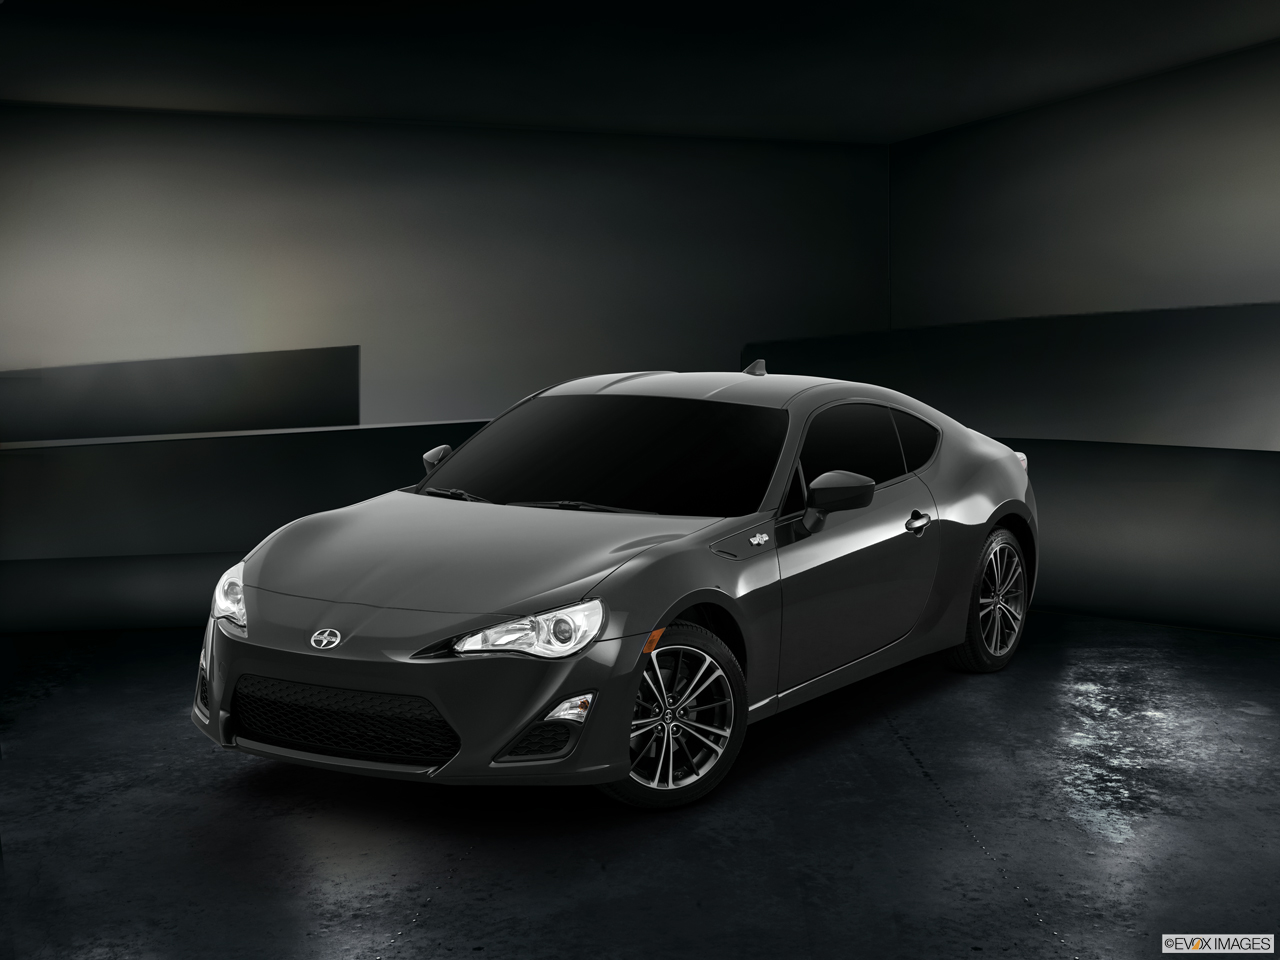 Exterior View Of 2016 Scion FR-S Riverside